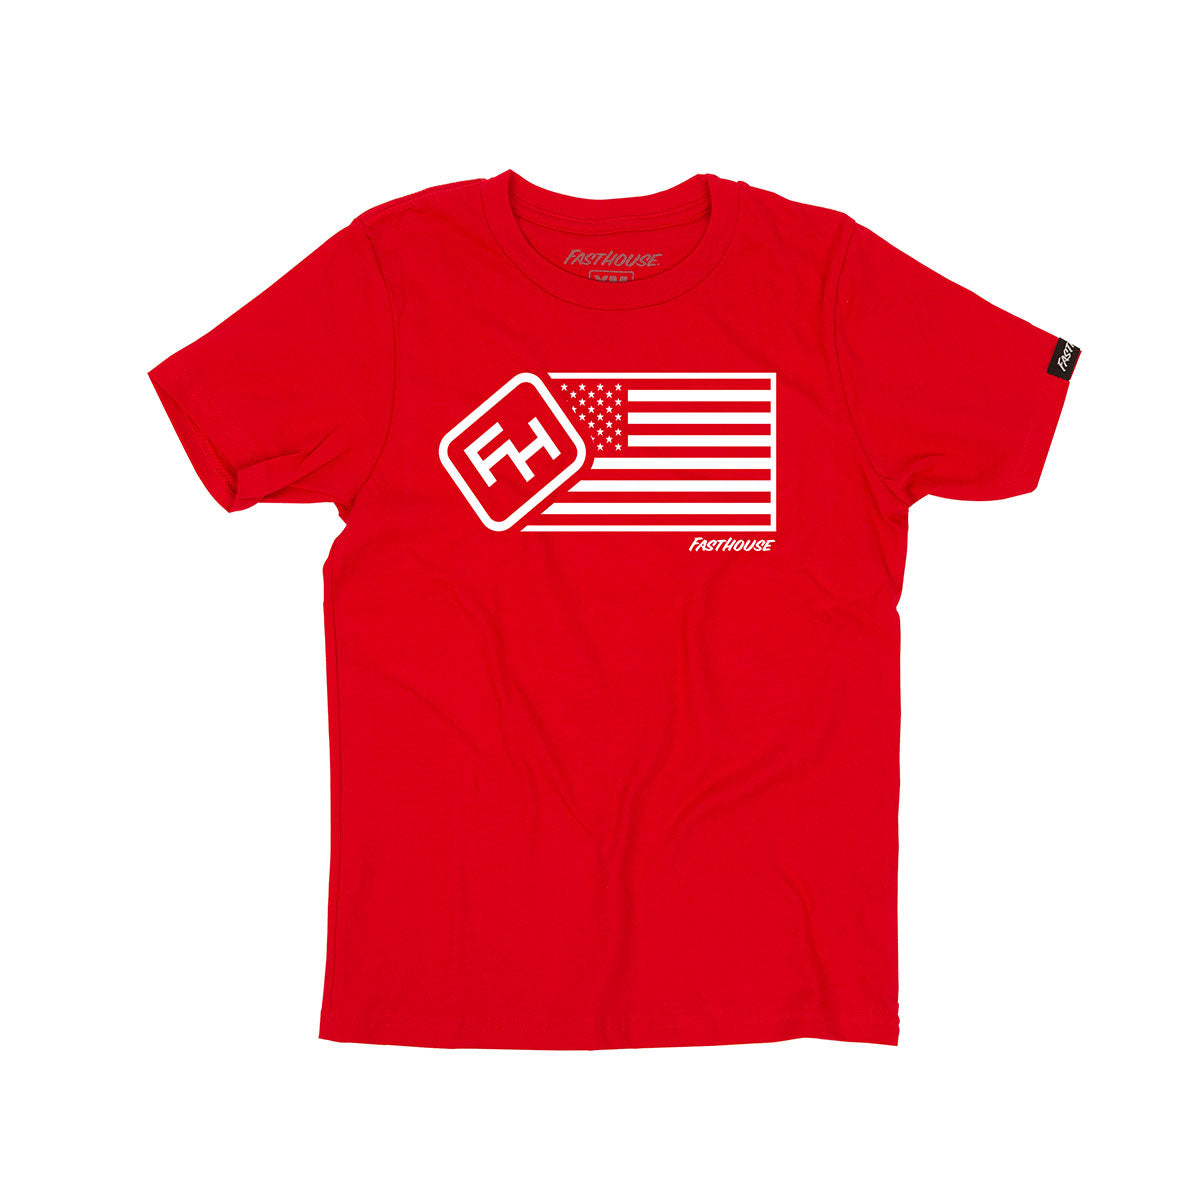 USA Youth Tee - Red